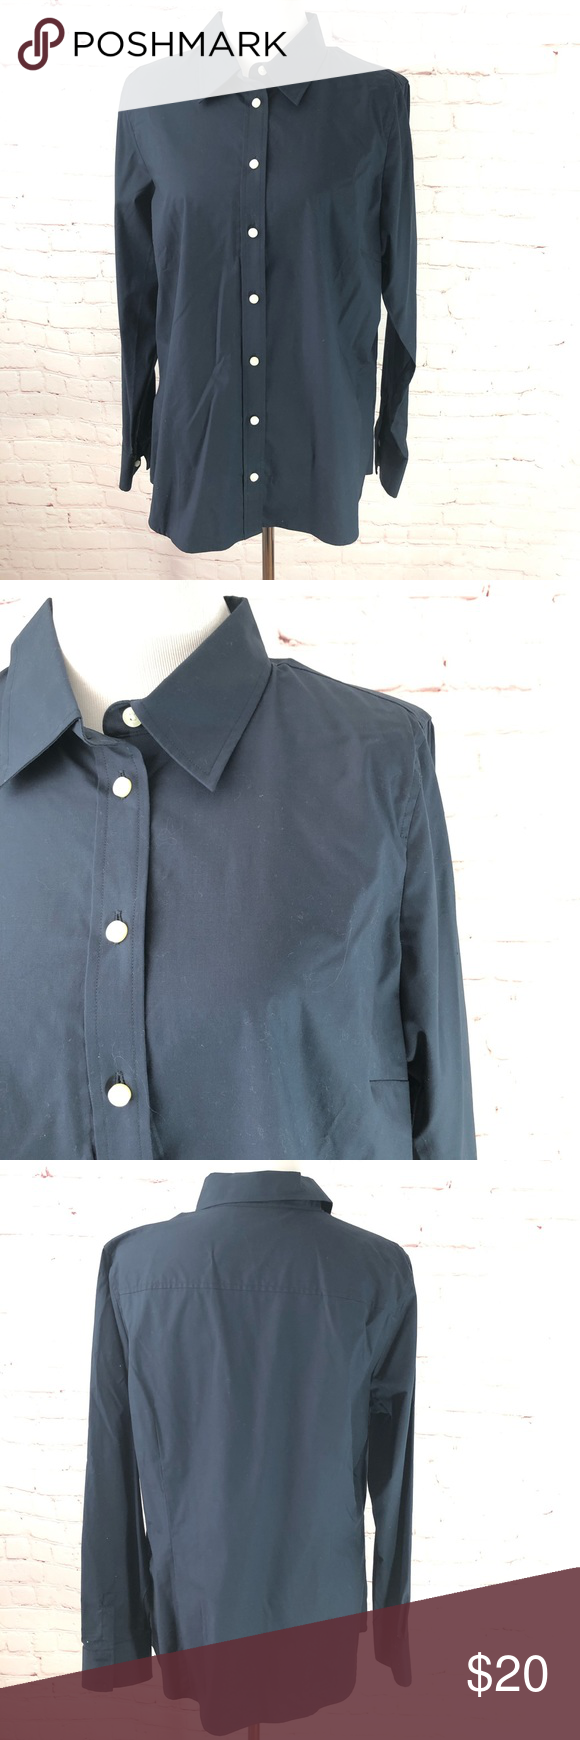 566aefc8 Old Navy Navy Blue Button Down Dress Shirt NWT Old Navy Navy Blue Button  Down Dress Shirt. This shirt is NWT and was purchased back when Old Navy  still sold ...